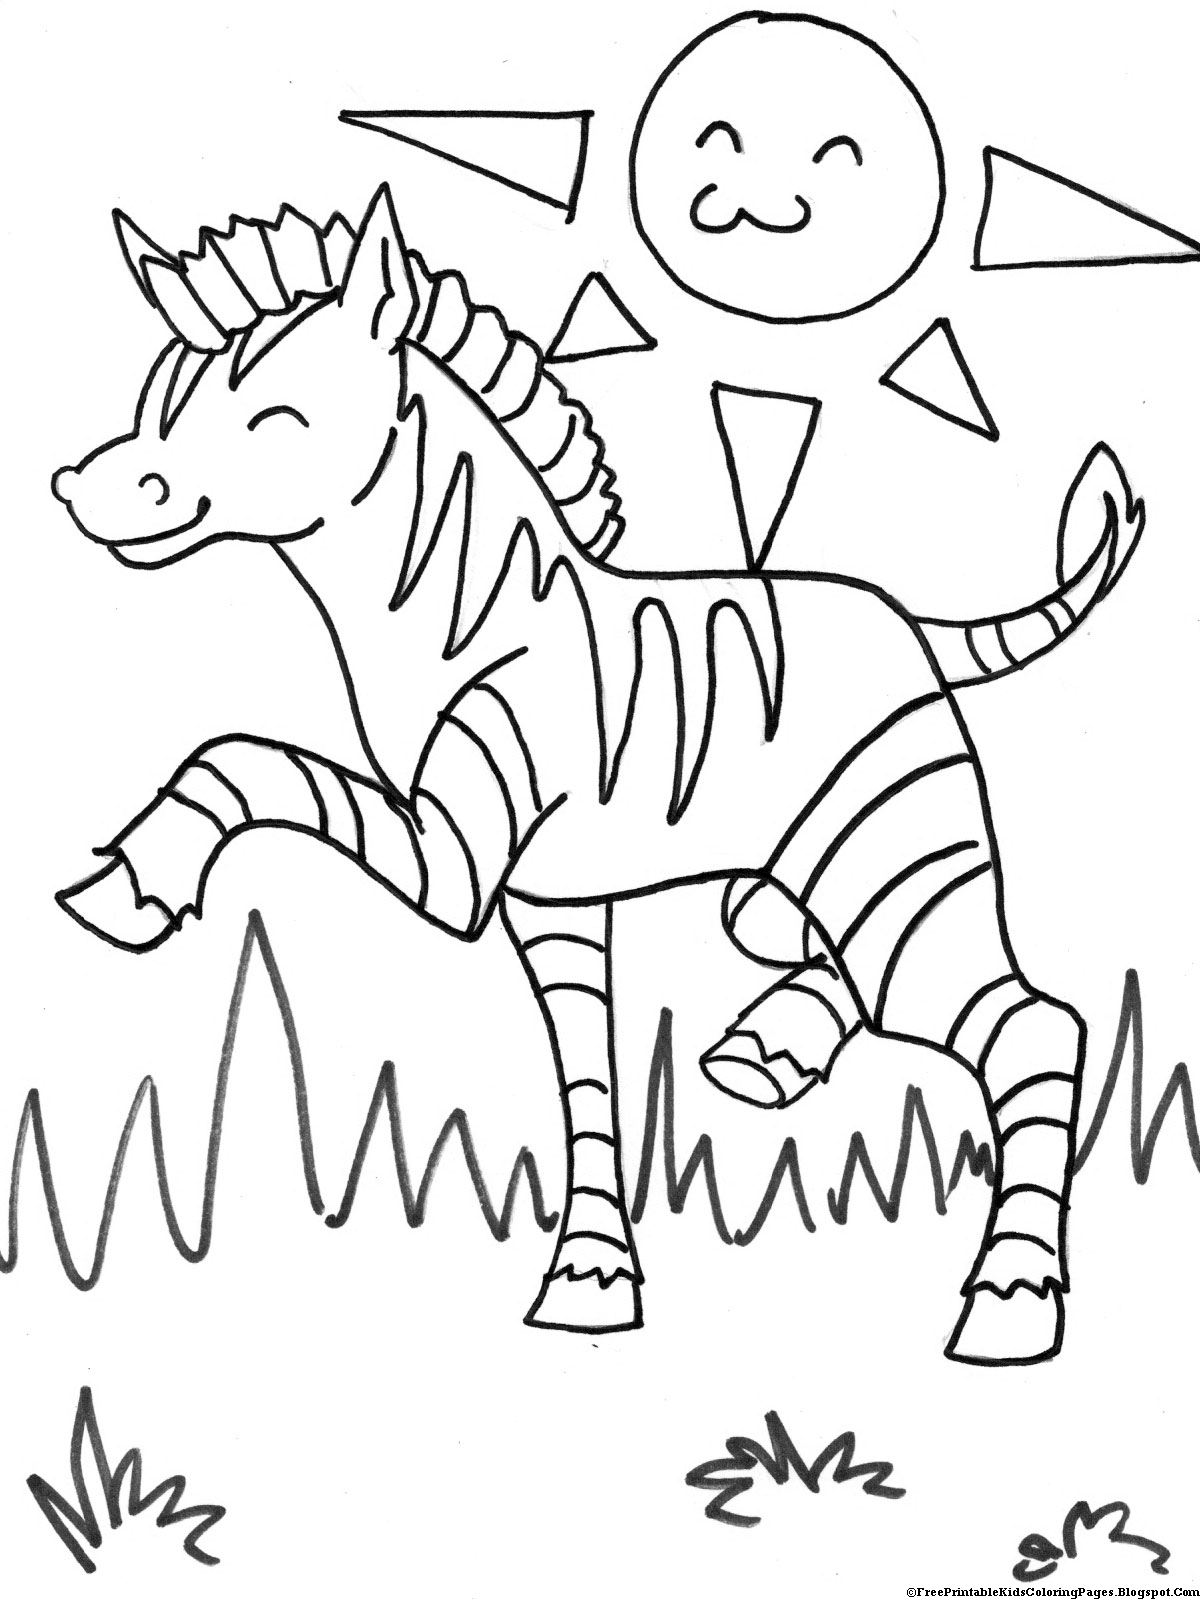 Free coloring pictures zoo animals - Zoo And Zebra Coloring Pages